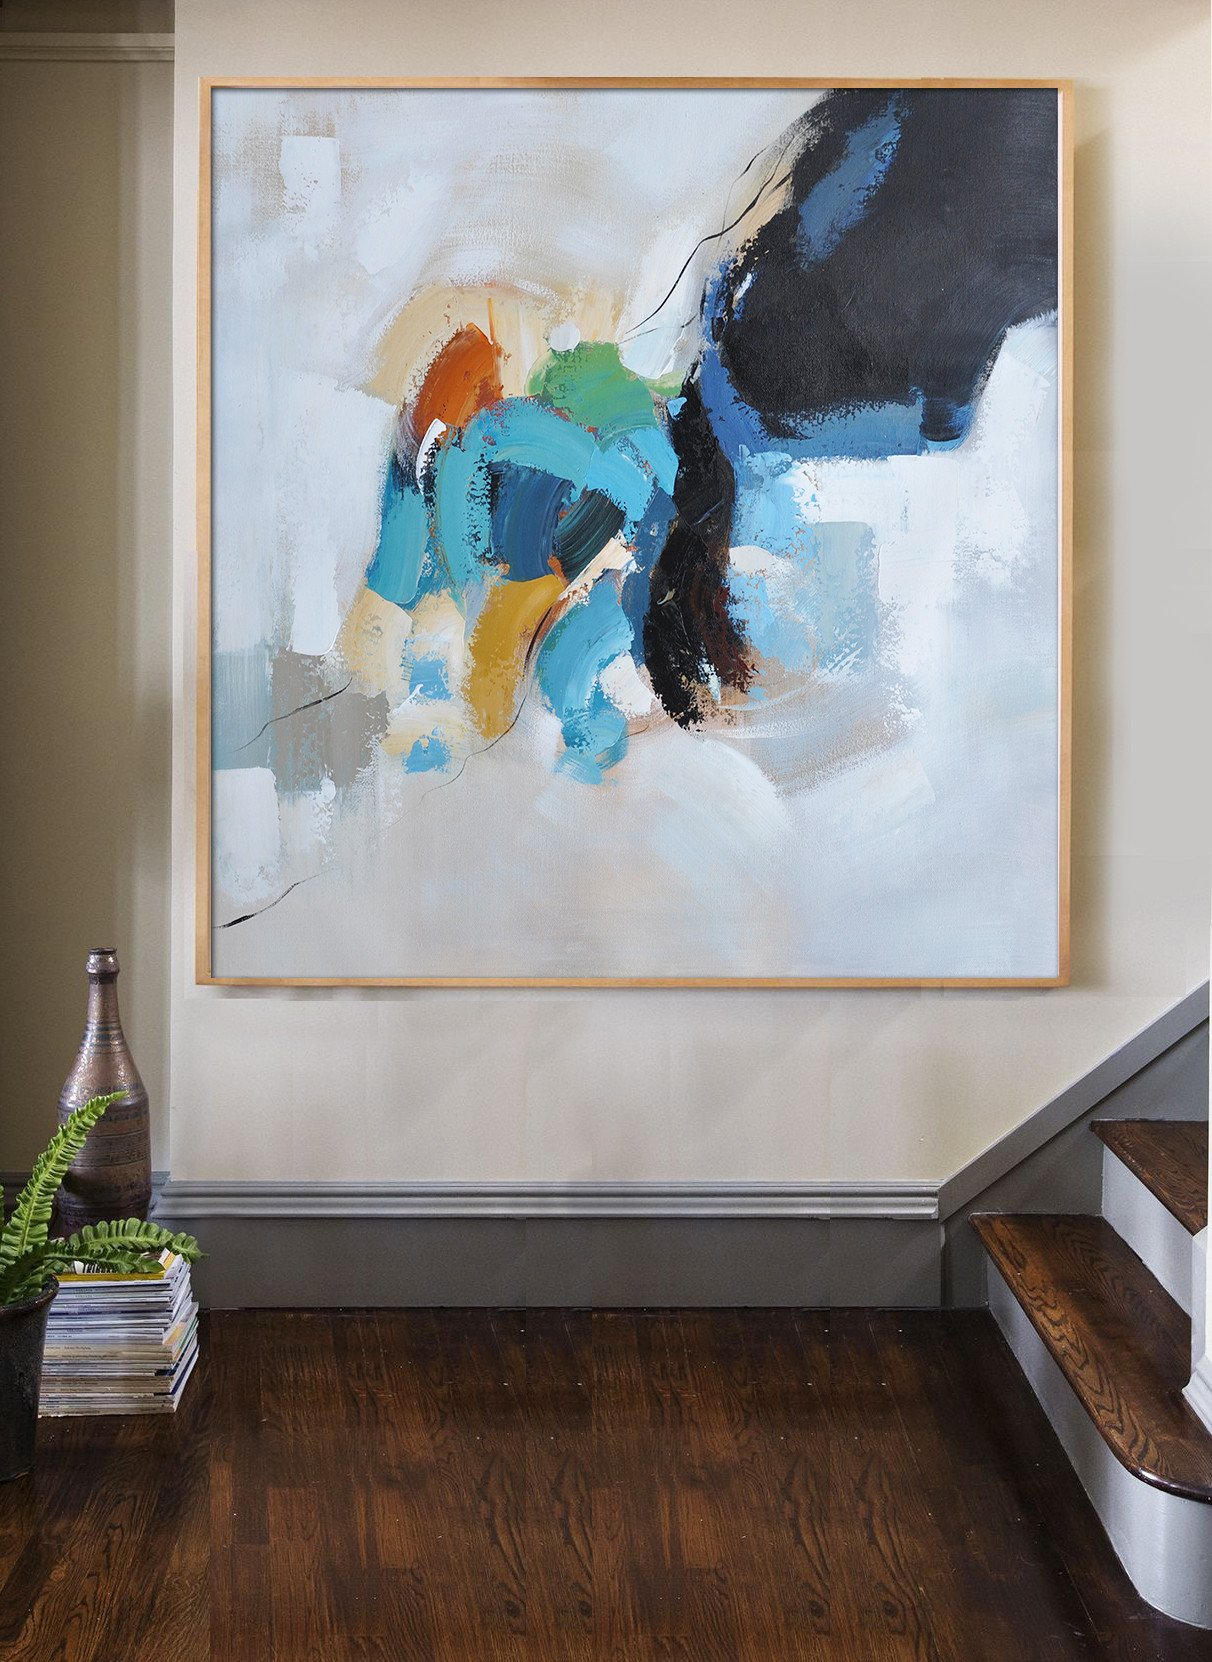 Large Modern Abstract Painting,Oversized Contemporary Art,Art Work,Black,White,Sky Blue,Green,Yellow.etc